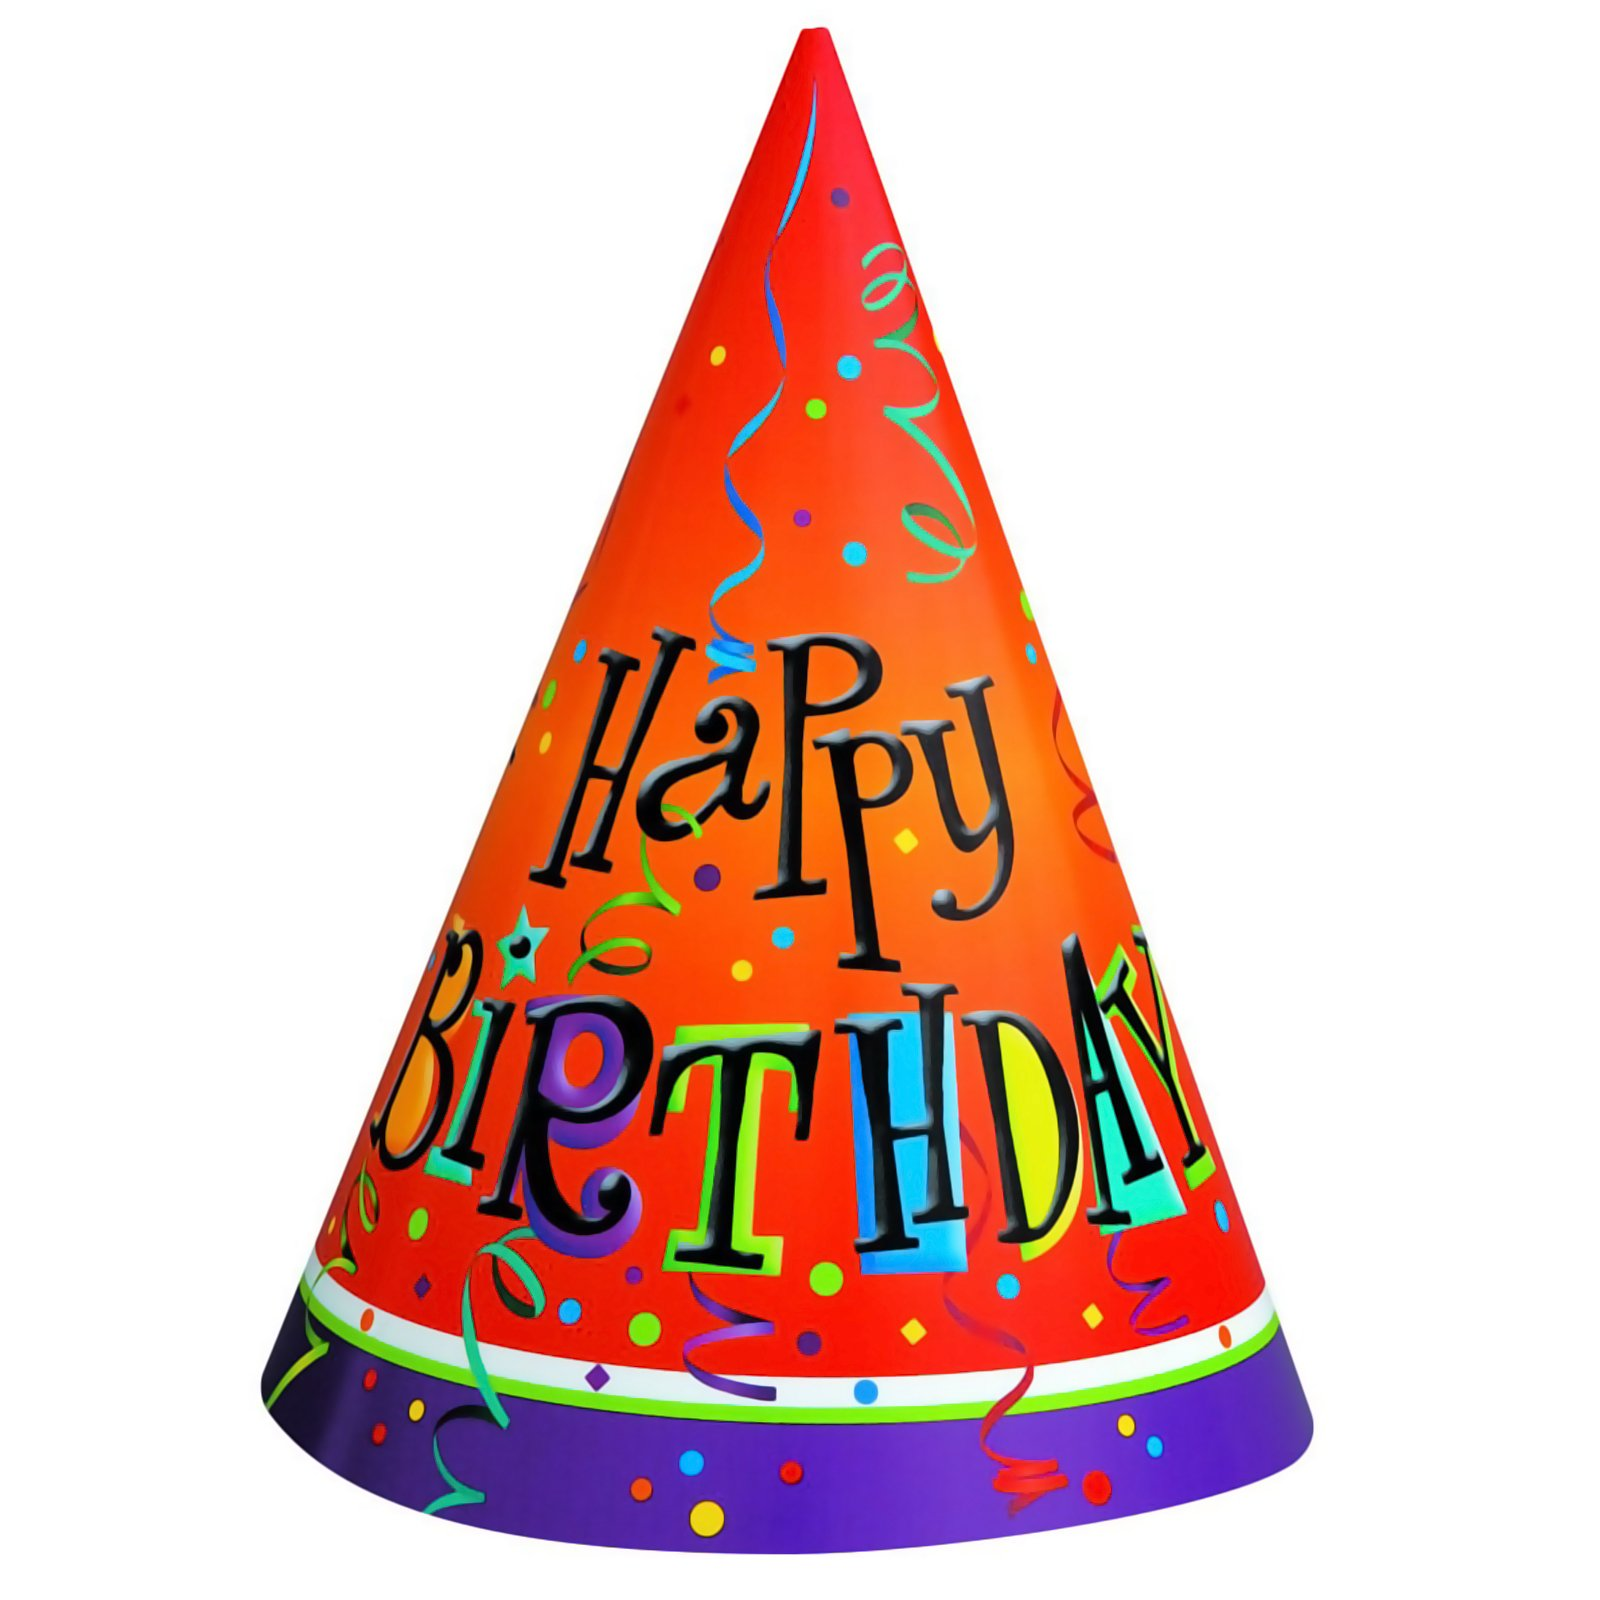 1600x1600 Birthday Hat Transparent Background Free Clipart 4